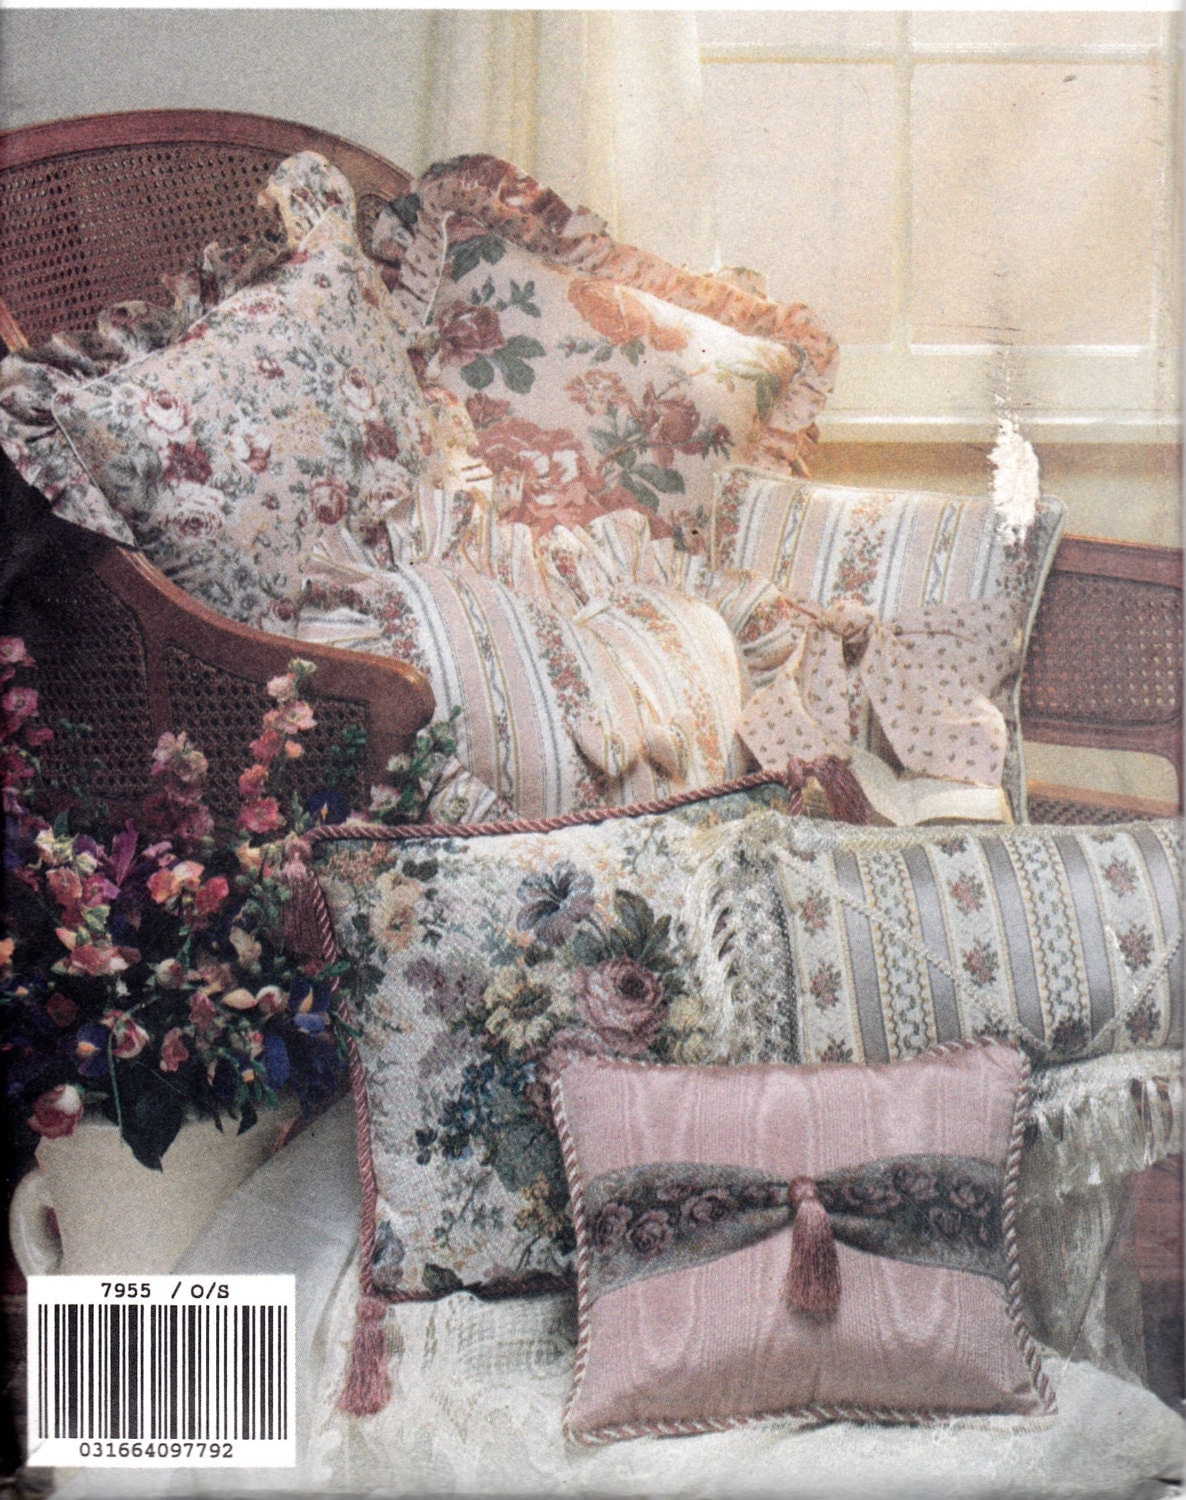 Craft sewing pattern 1990 39 s pillows home decor vogue 7955 from sutlerssundries on etsy studio Home decor 1990s